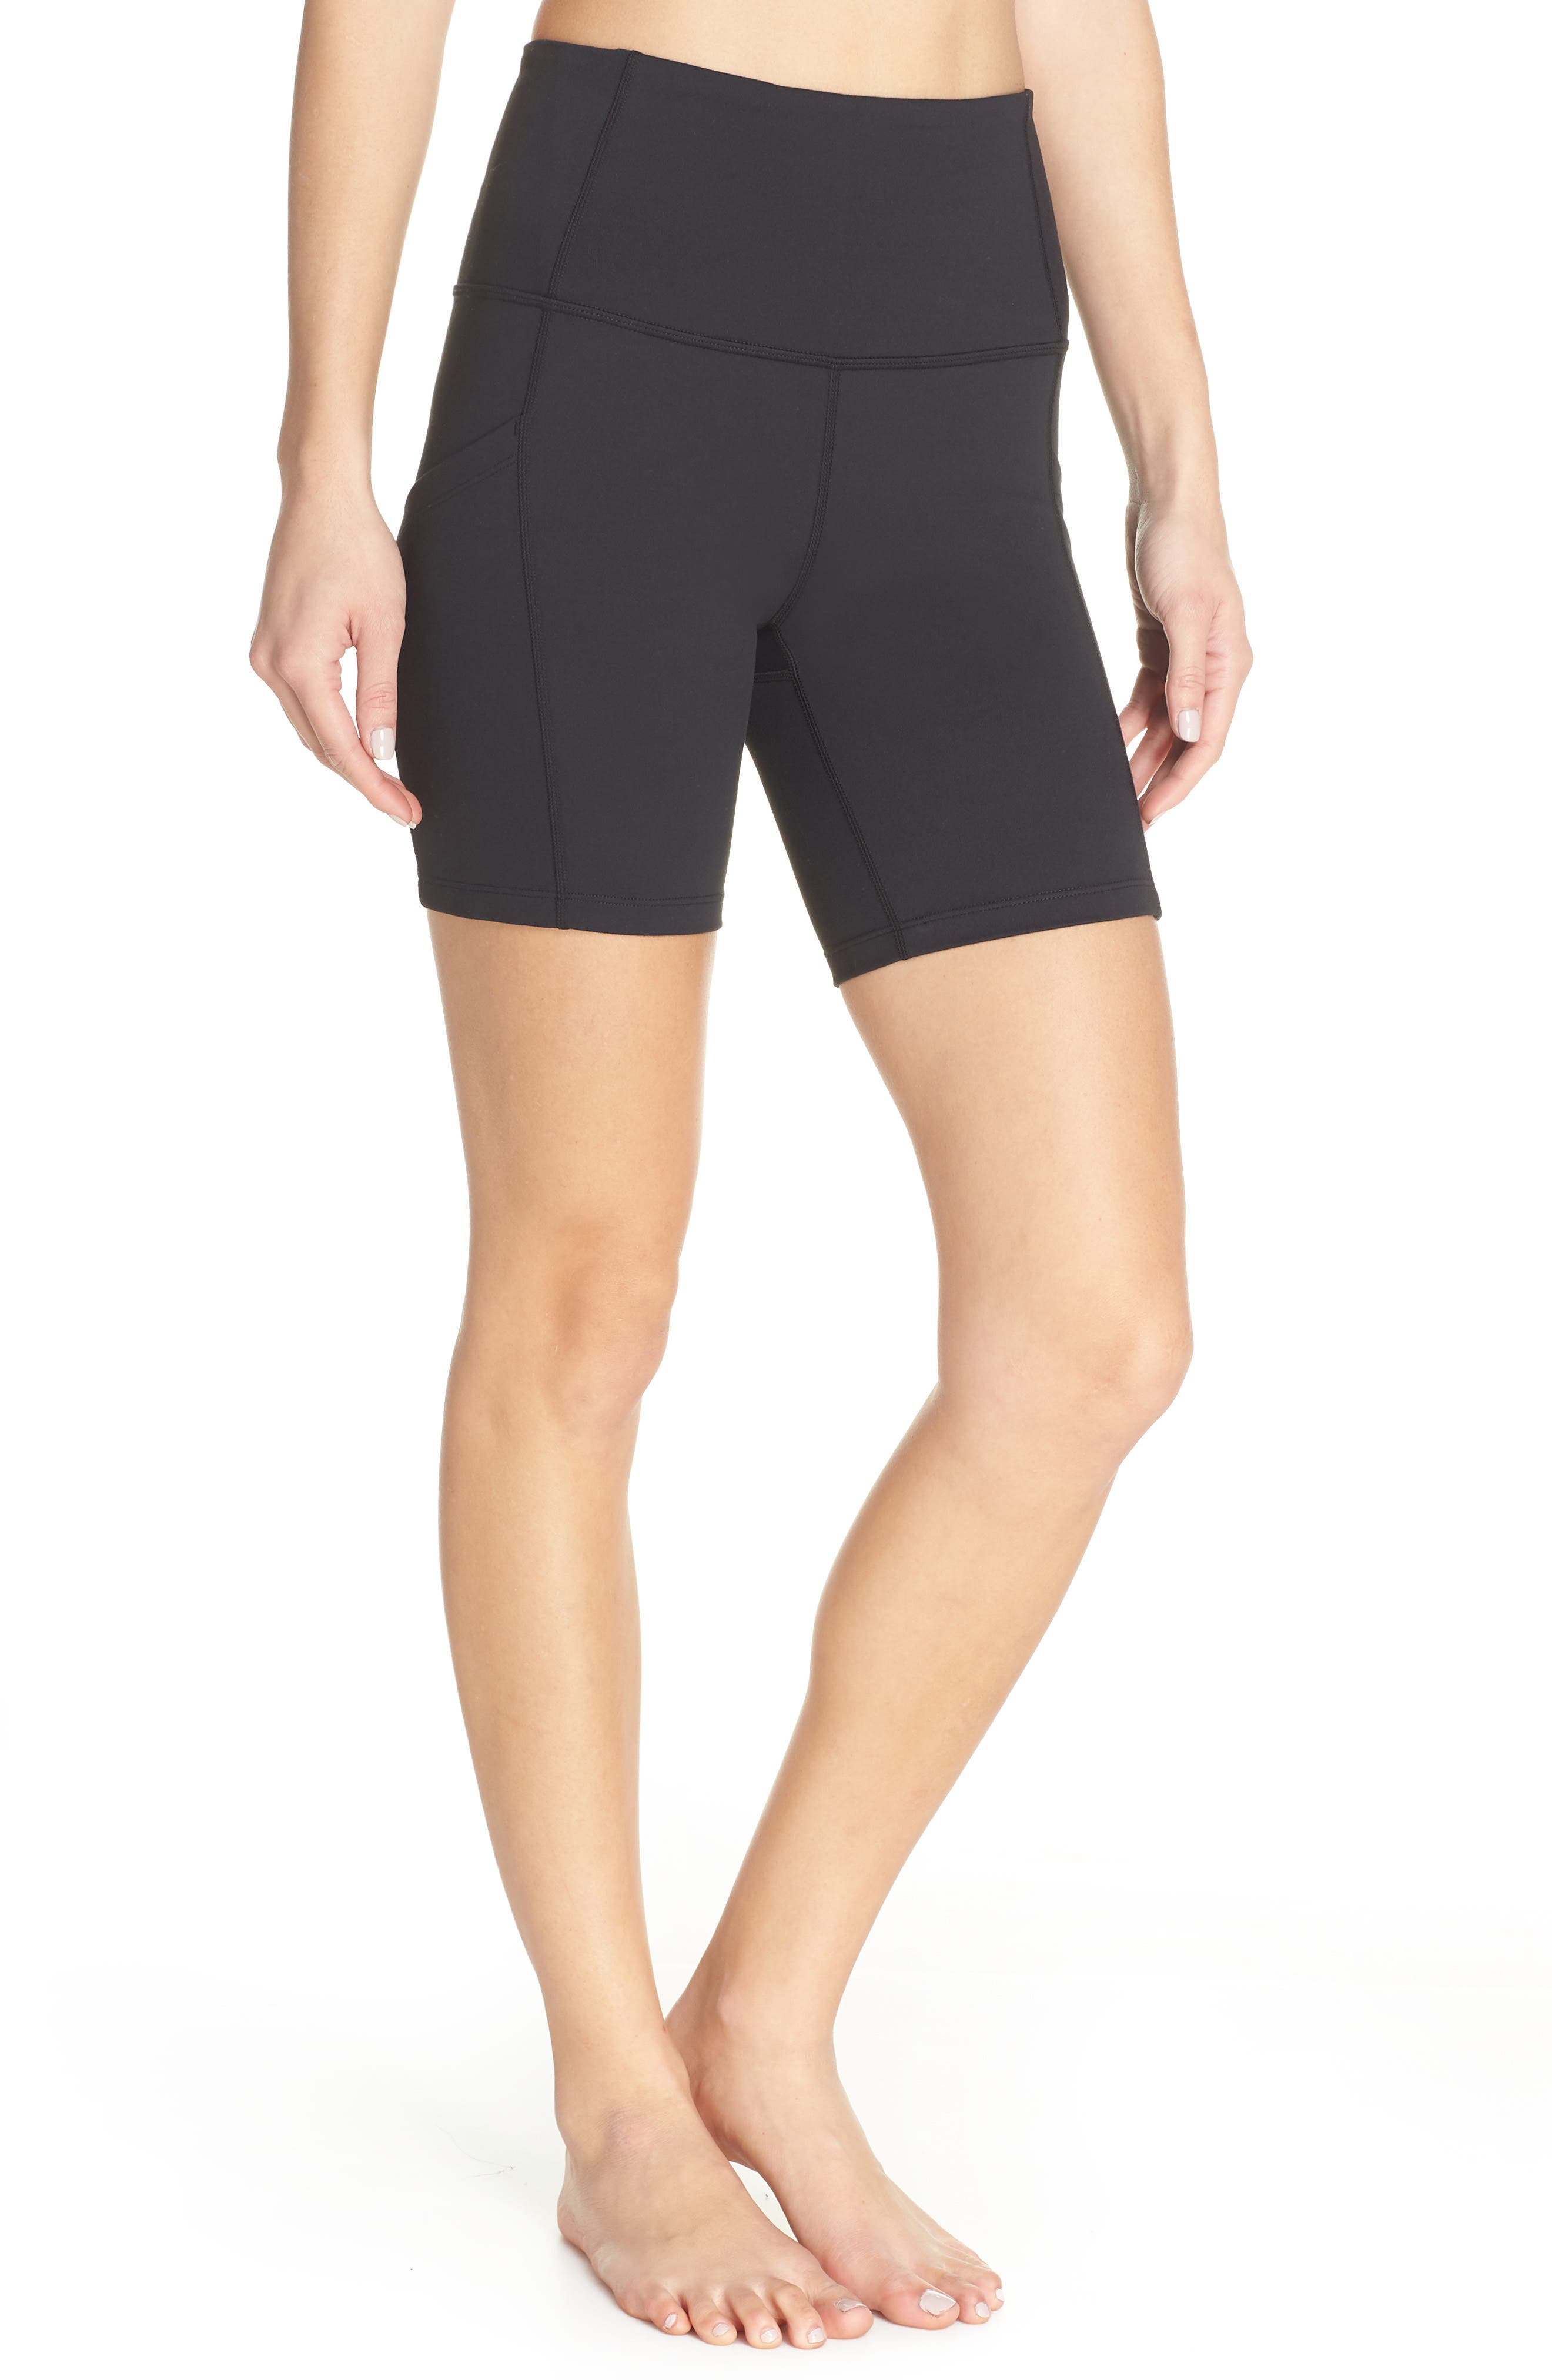 ZELLA Live In High Waist Pocket Bike Shorts, Main, color, BLACK